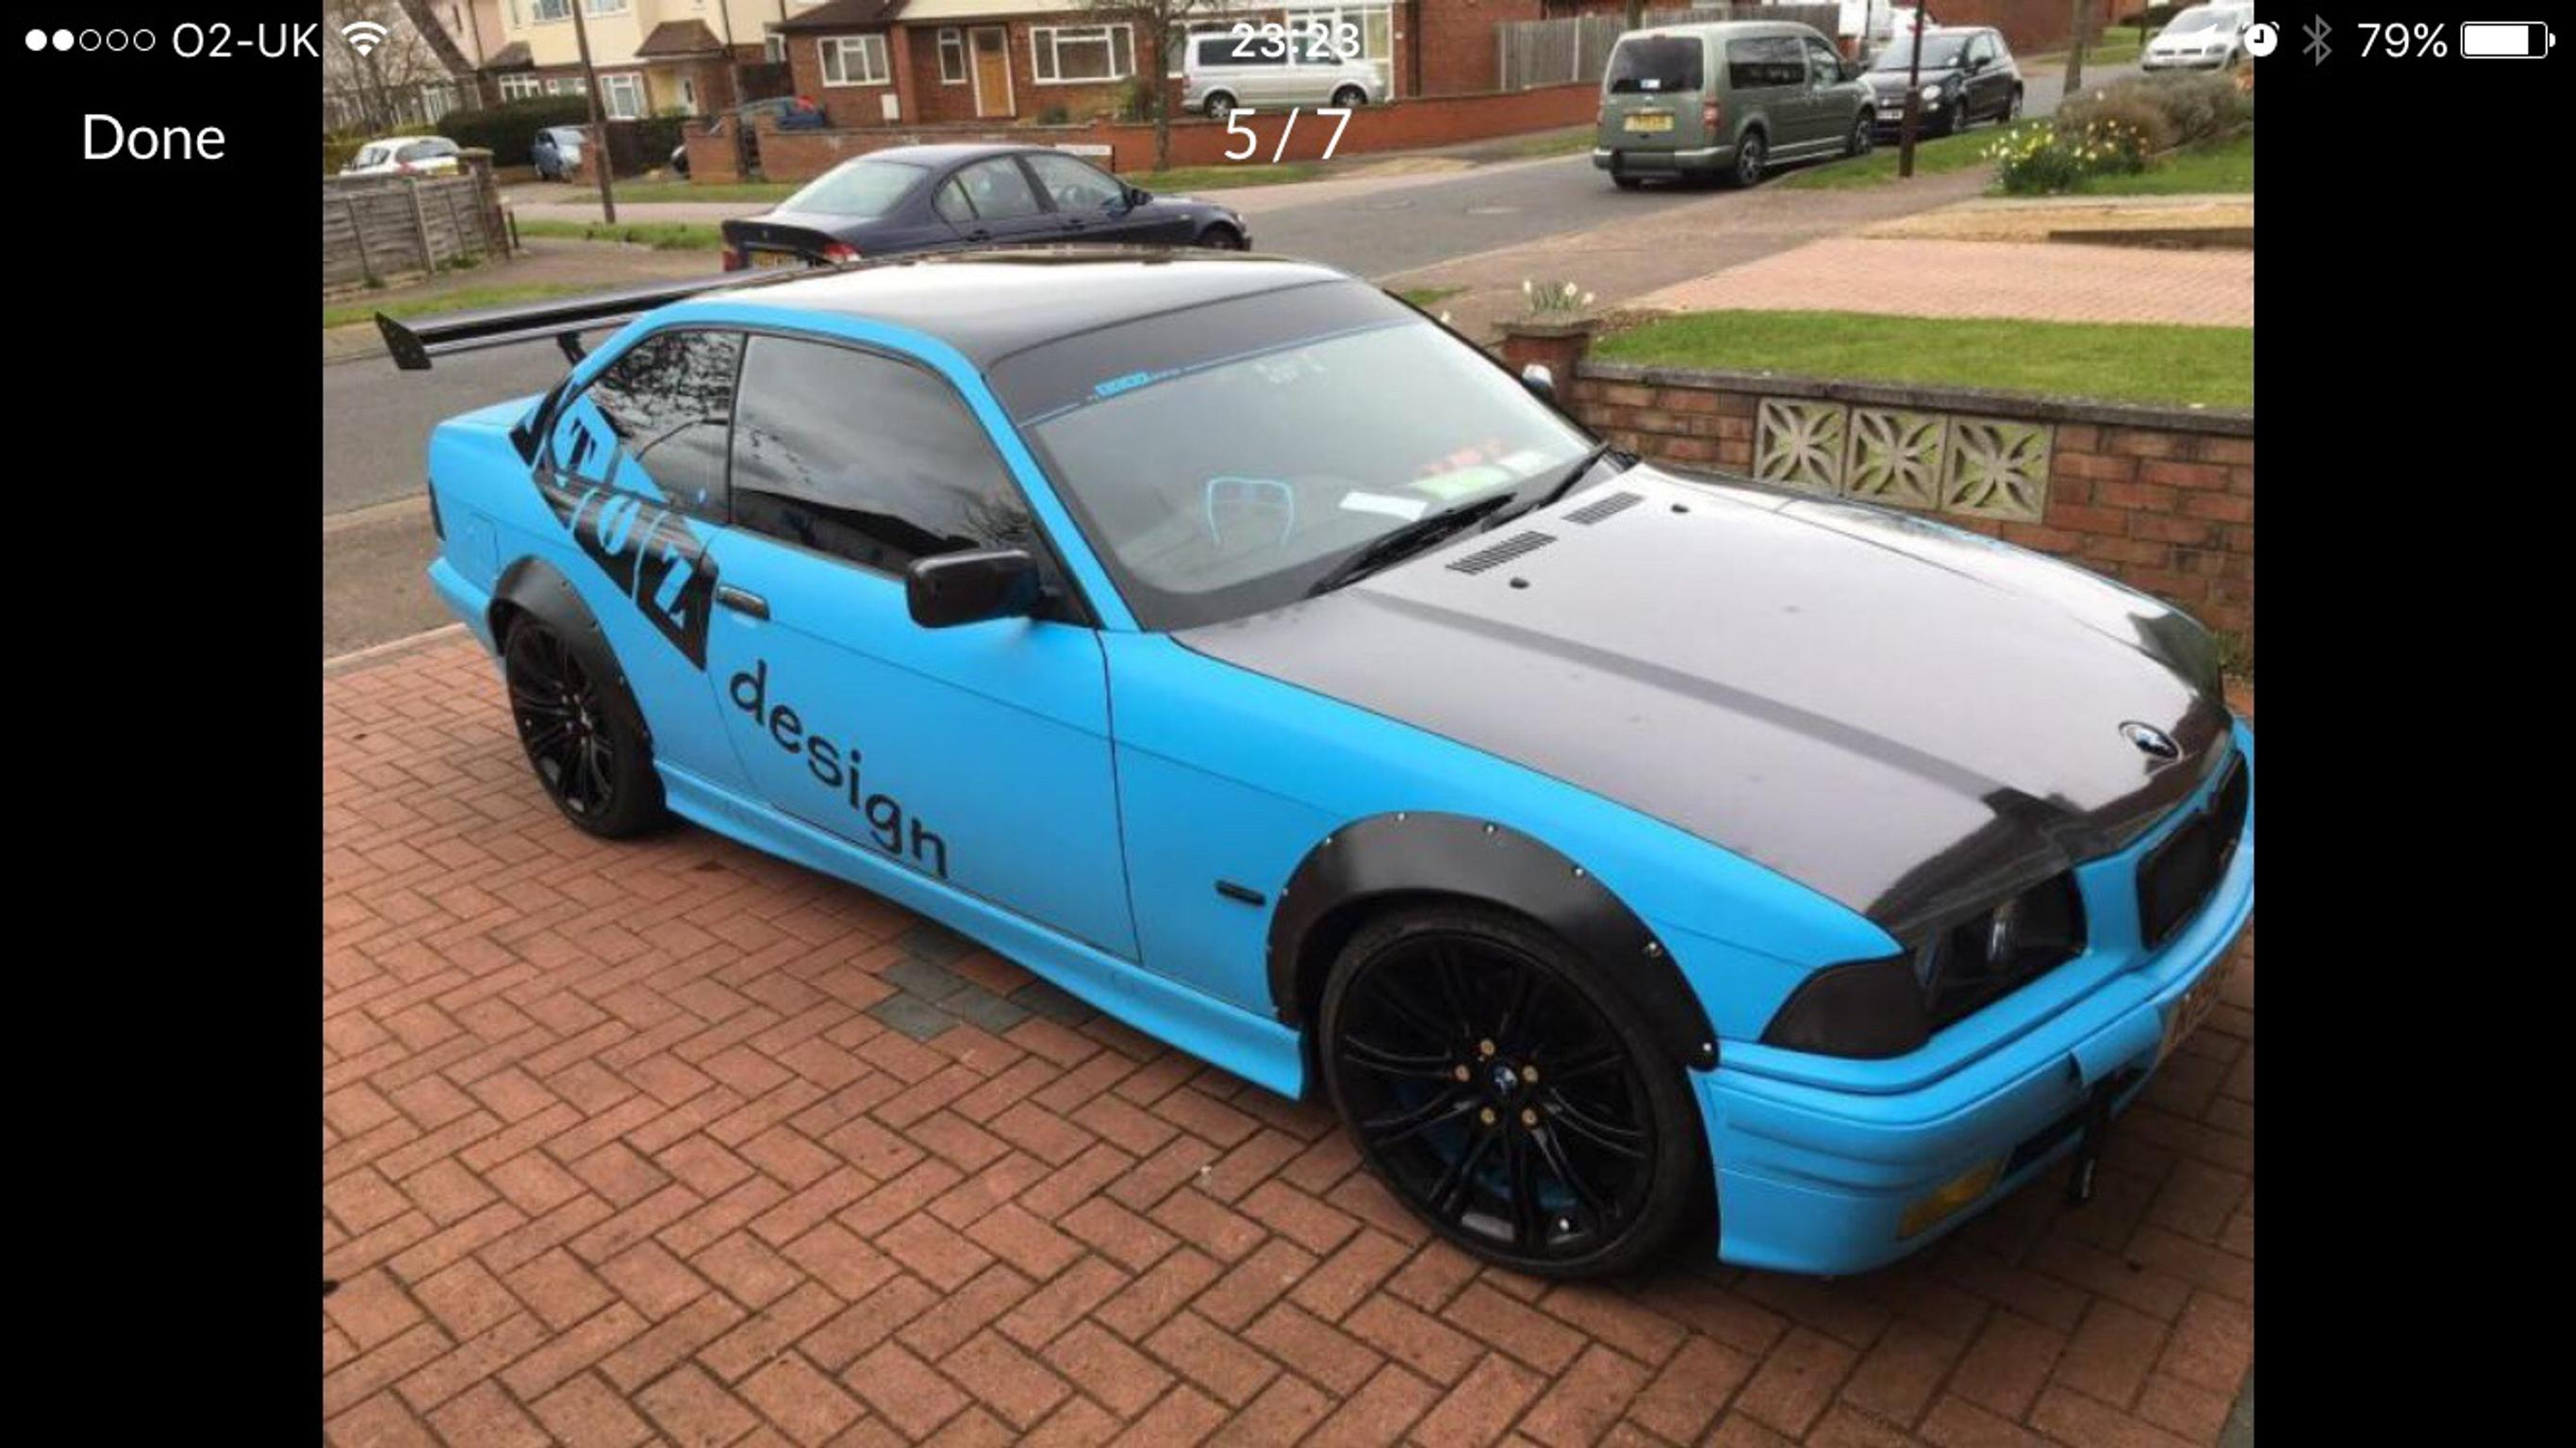 Bmw E36 323 Shell 2 8 Engine Drift Car In Hp1 Hemel